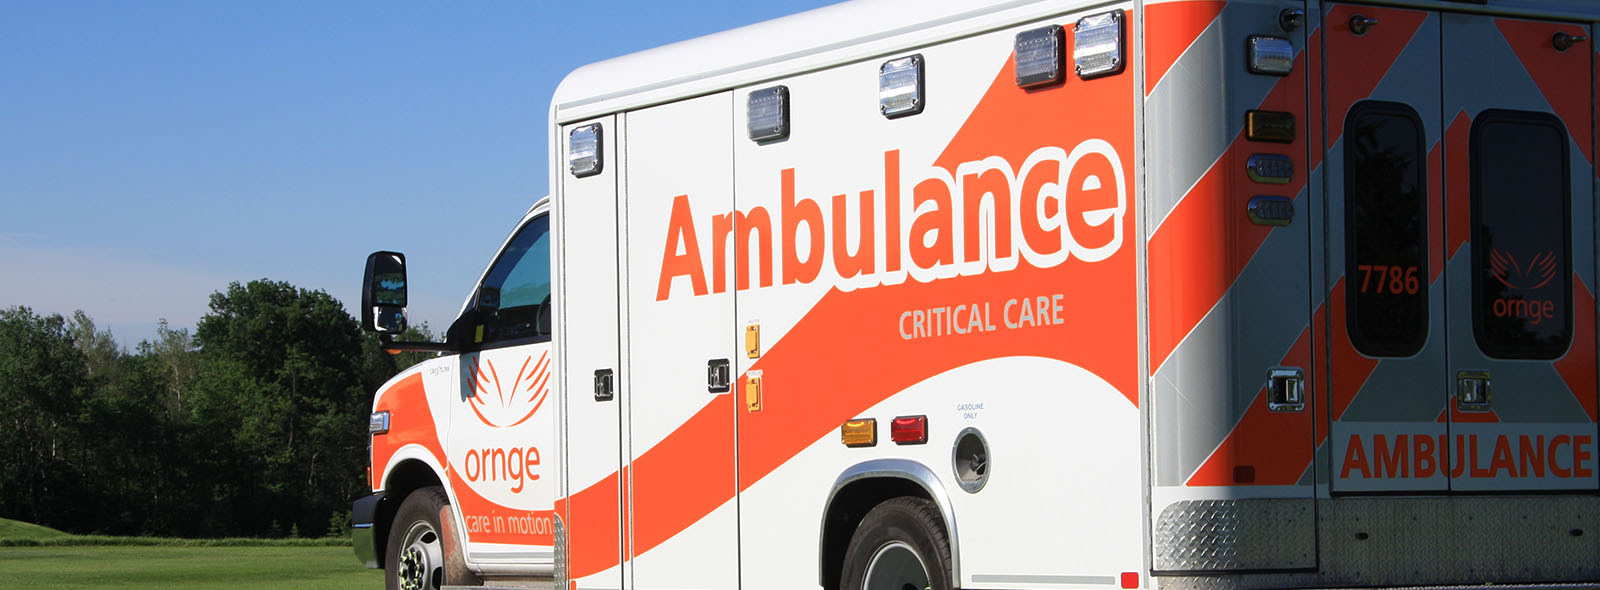 Ornge Critical Care Land Ambulance